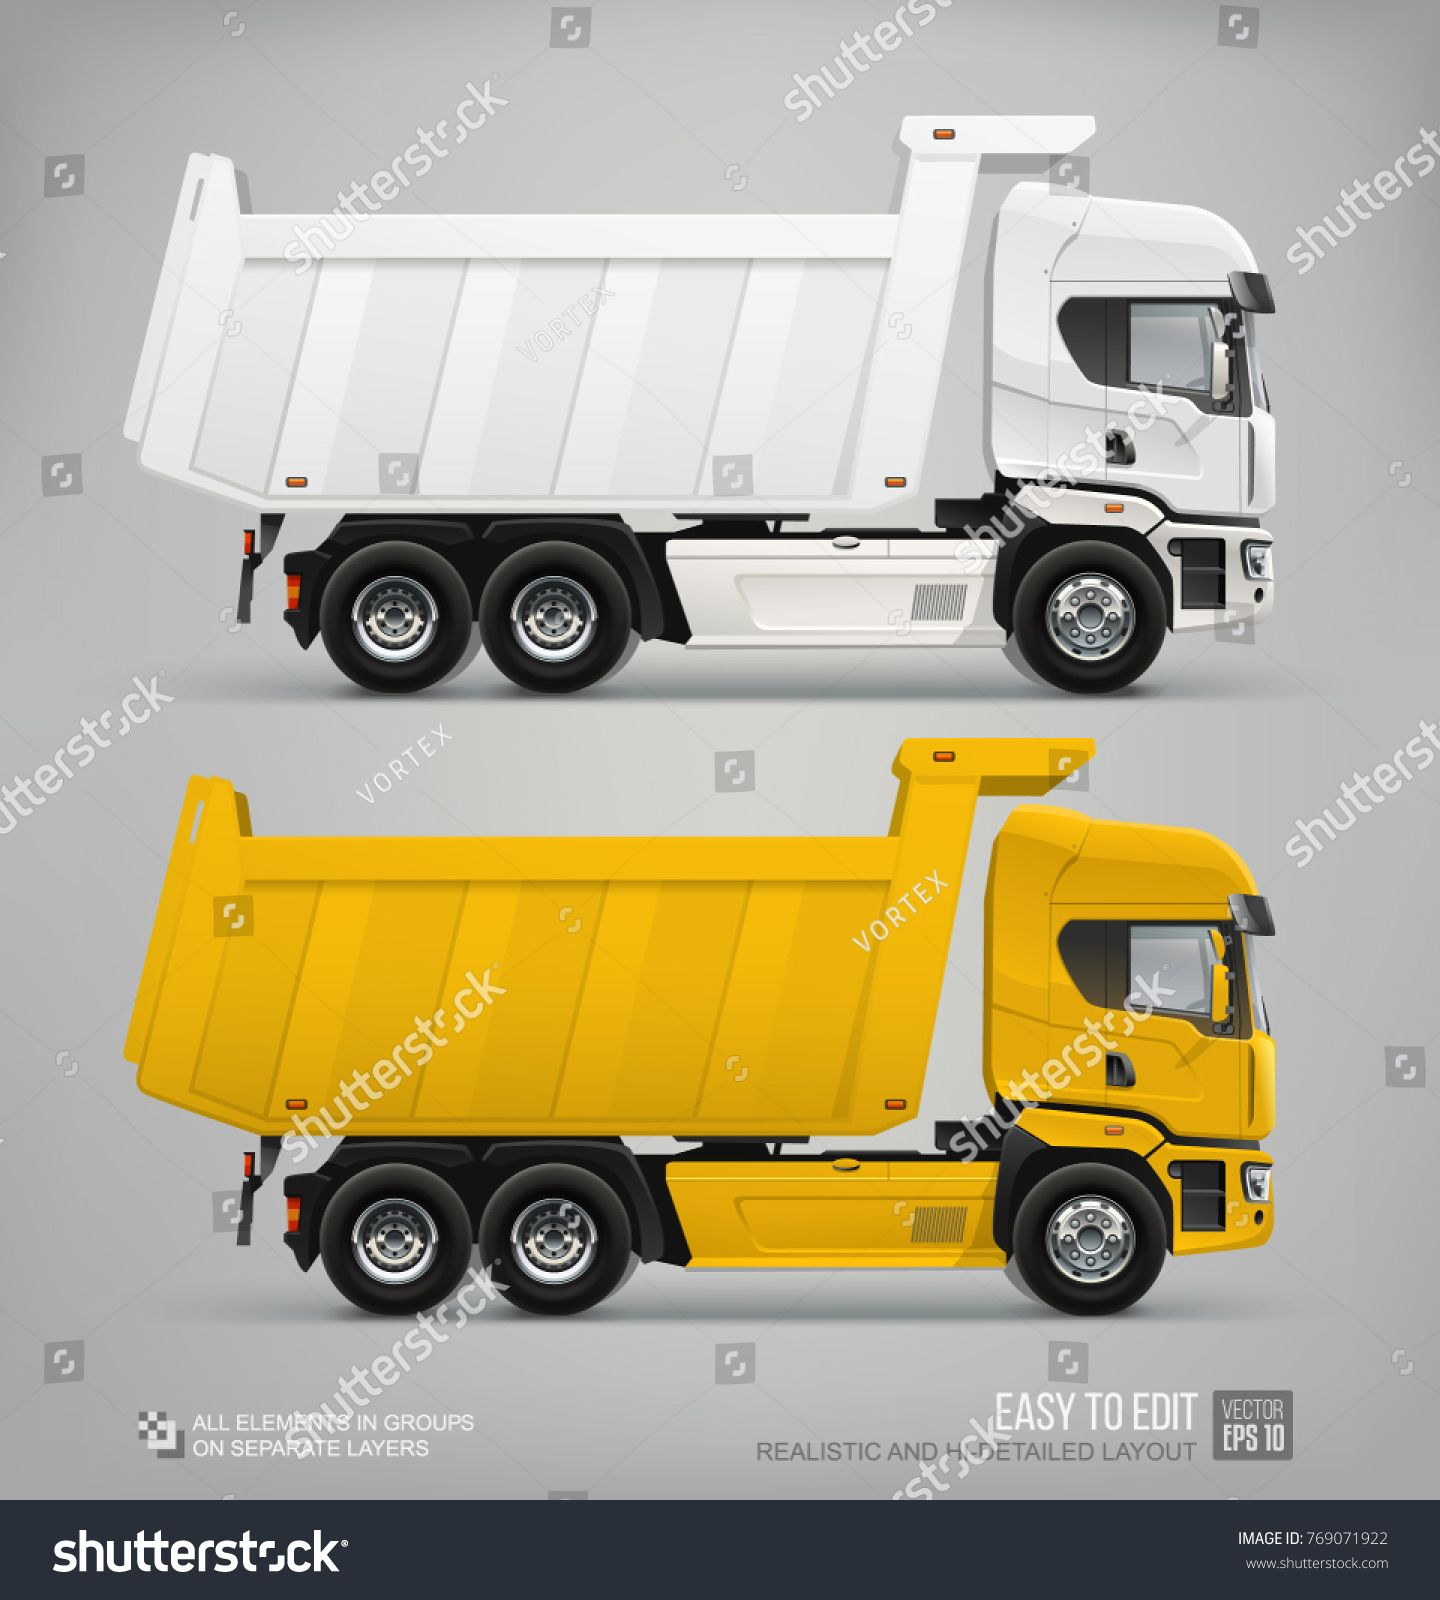 Realistic Dump Truck Vector Template White And Yellow Cargo Dump Truck Industrial Dumper Vehicle Mockuptemplate White Yellow Vecto Trucks Dump Truck Vehicles